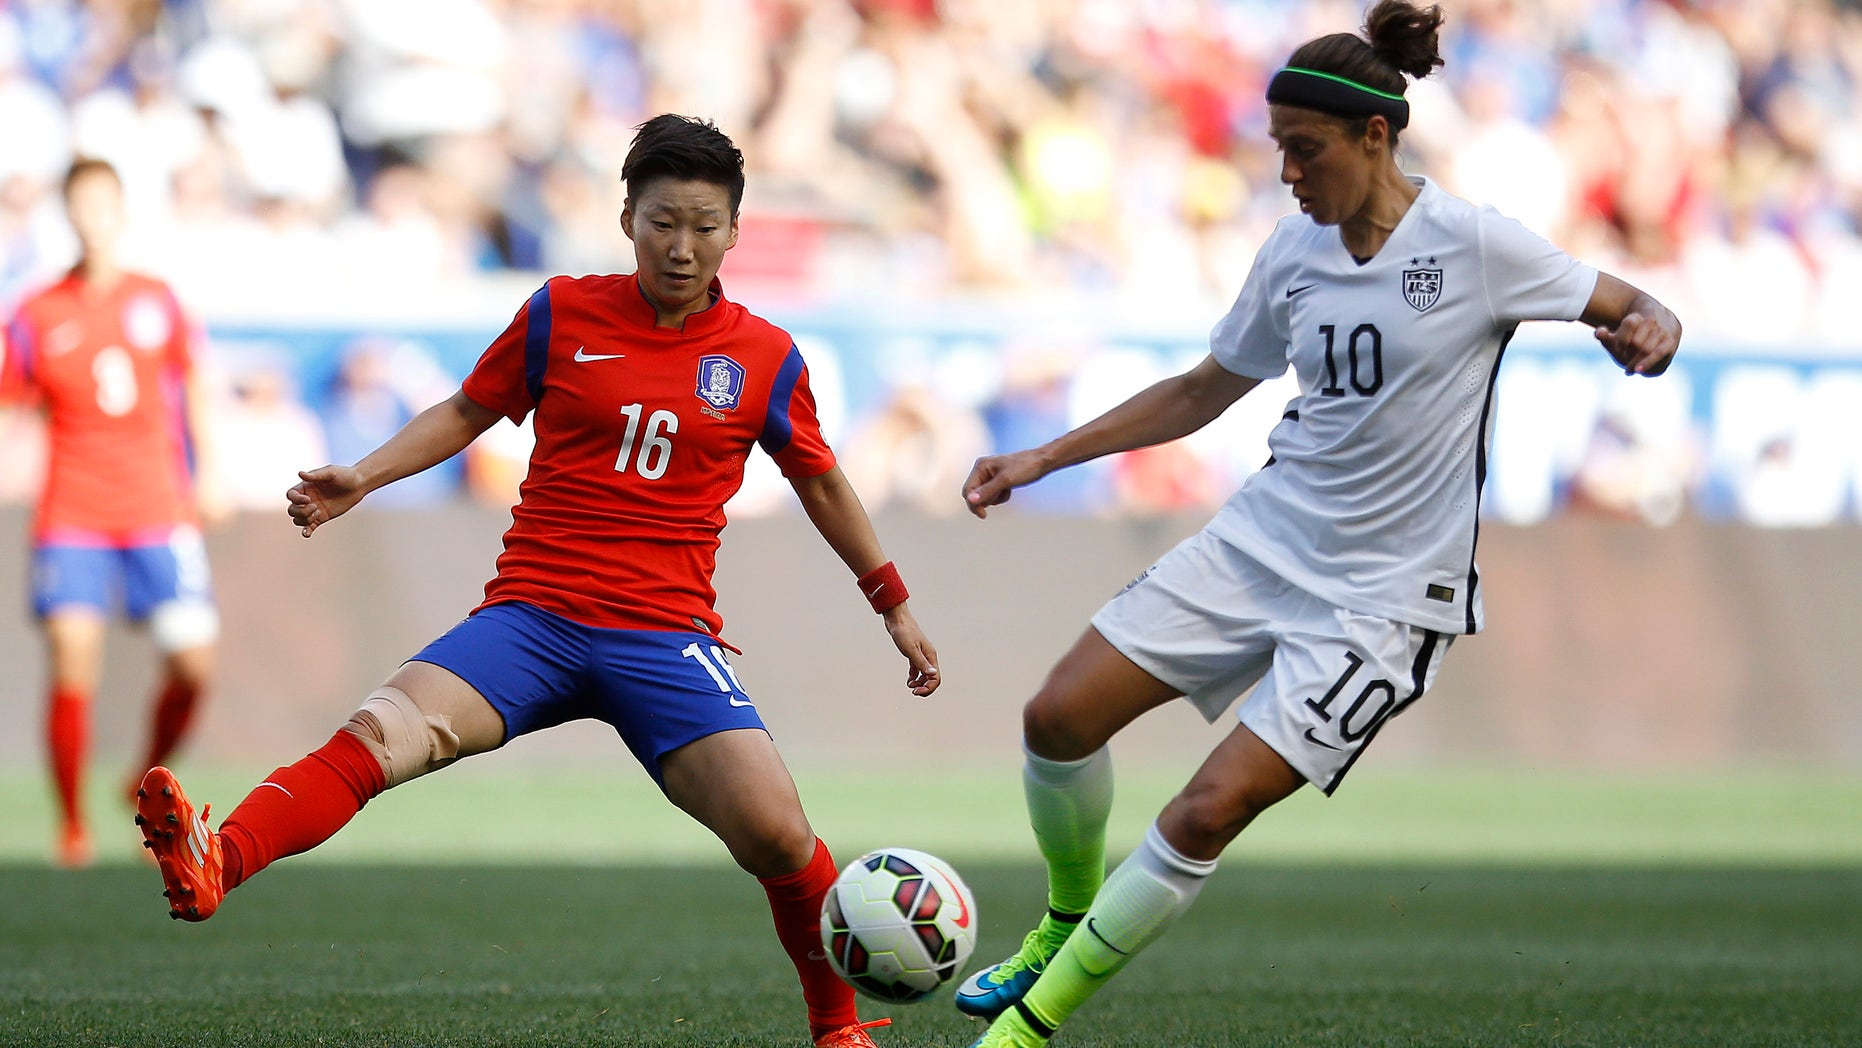 United States midfielder Carli Lloyd, right, controls the ball against South Korea midfielder Kwon Hahnul during the first half of an international friendly soccer match, Saturday, May 30, 2015, in Harrison, N.J. (AP Photo/Julio Cortez)